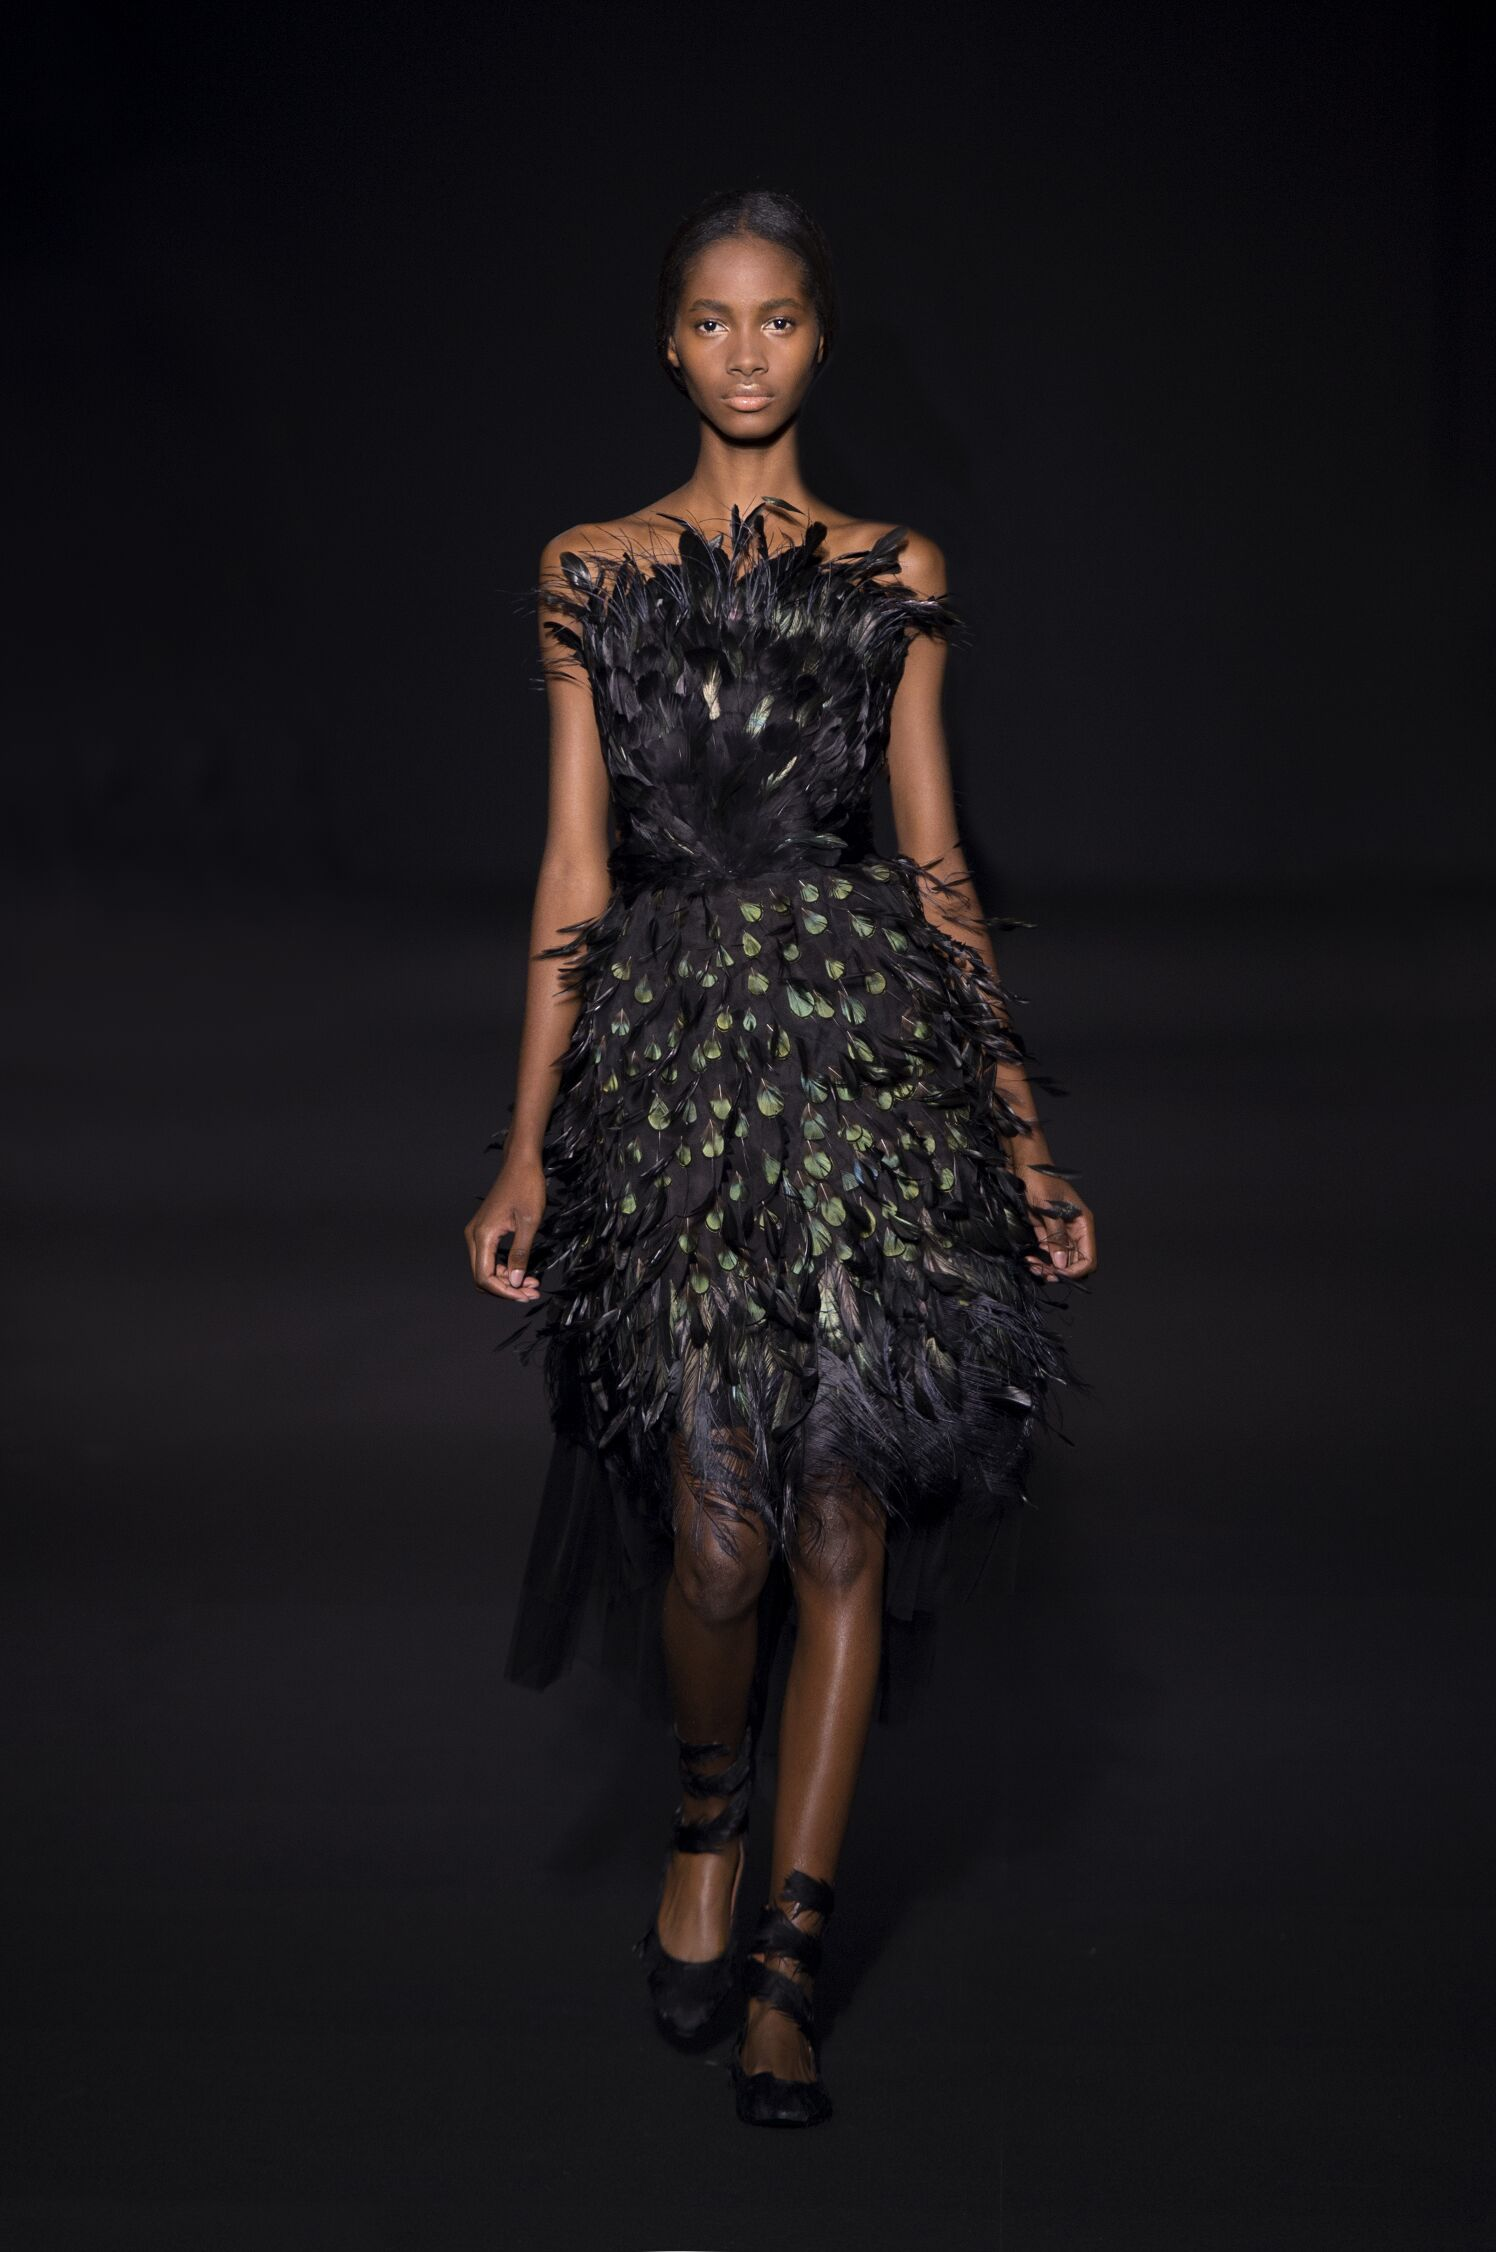 ALBERTA FERRETTI FALL WINTER 2014-15 WOMEN'S COLLECTION | The ...